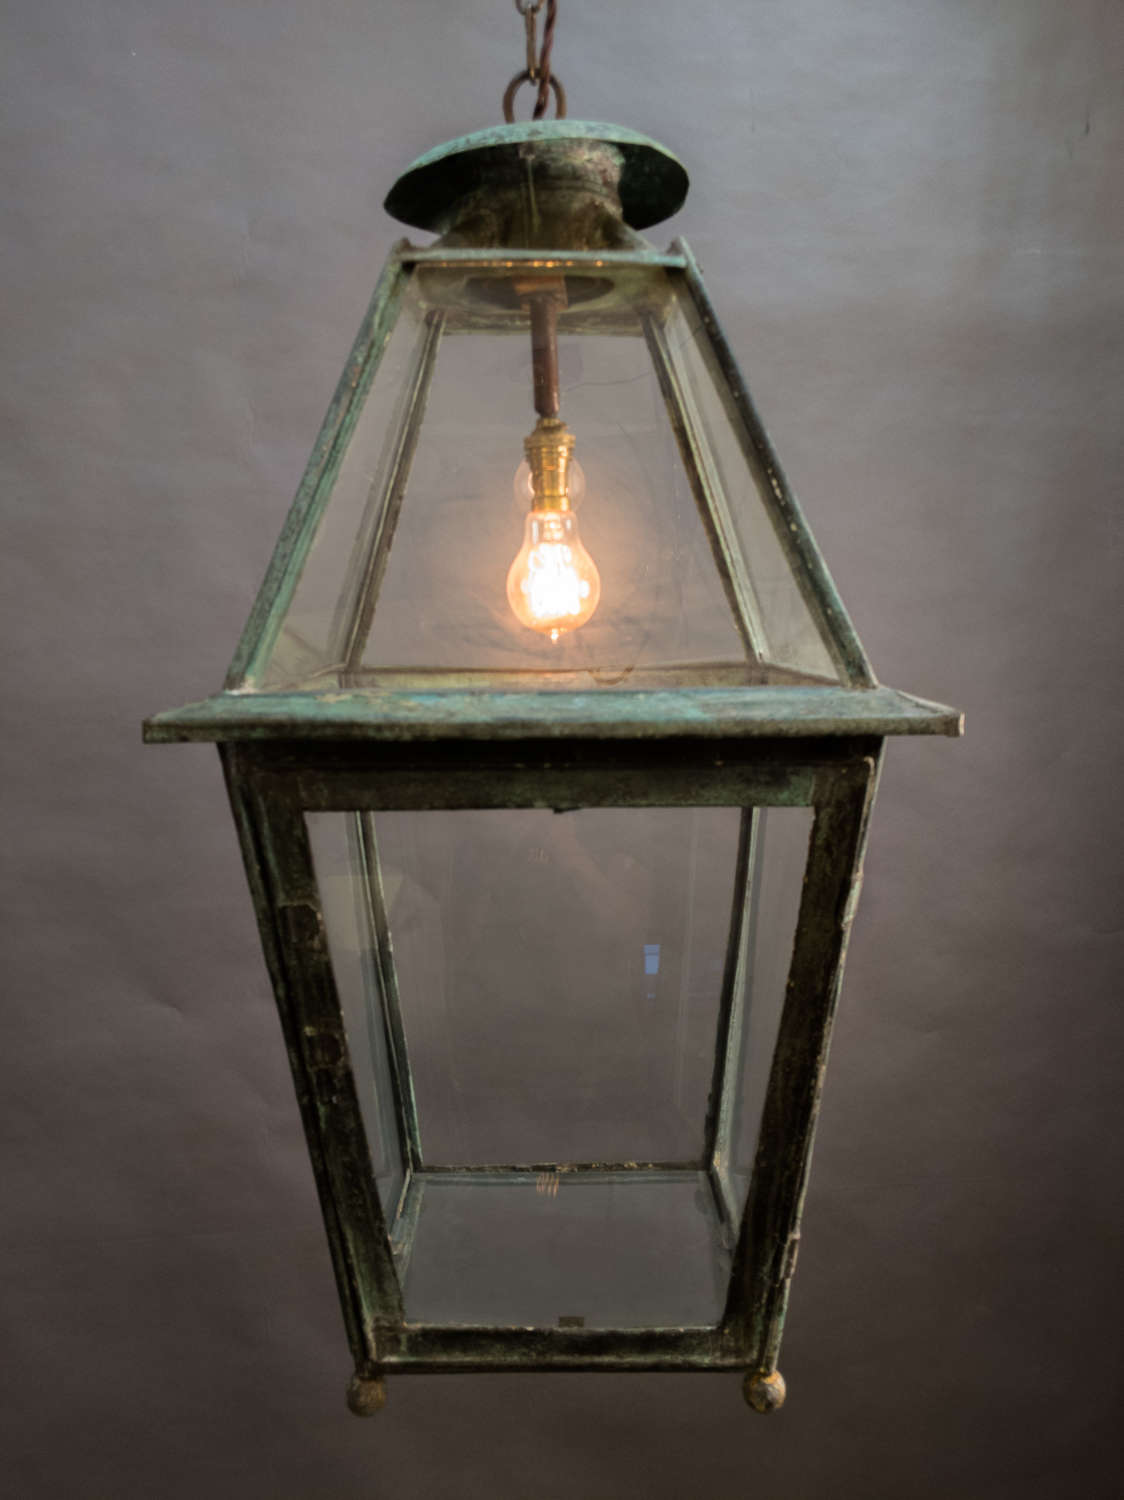 A 19th Century Verdigris Copper Lantern